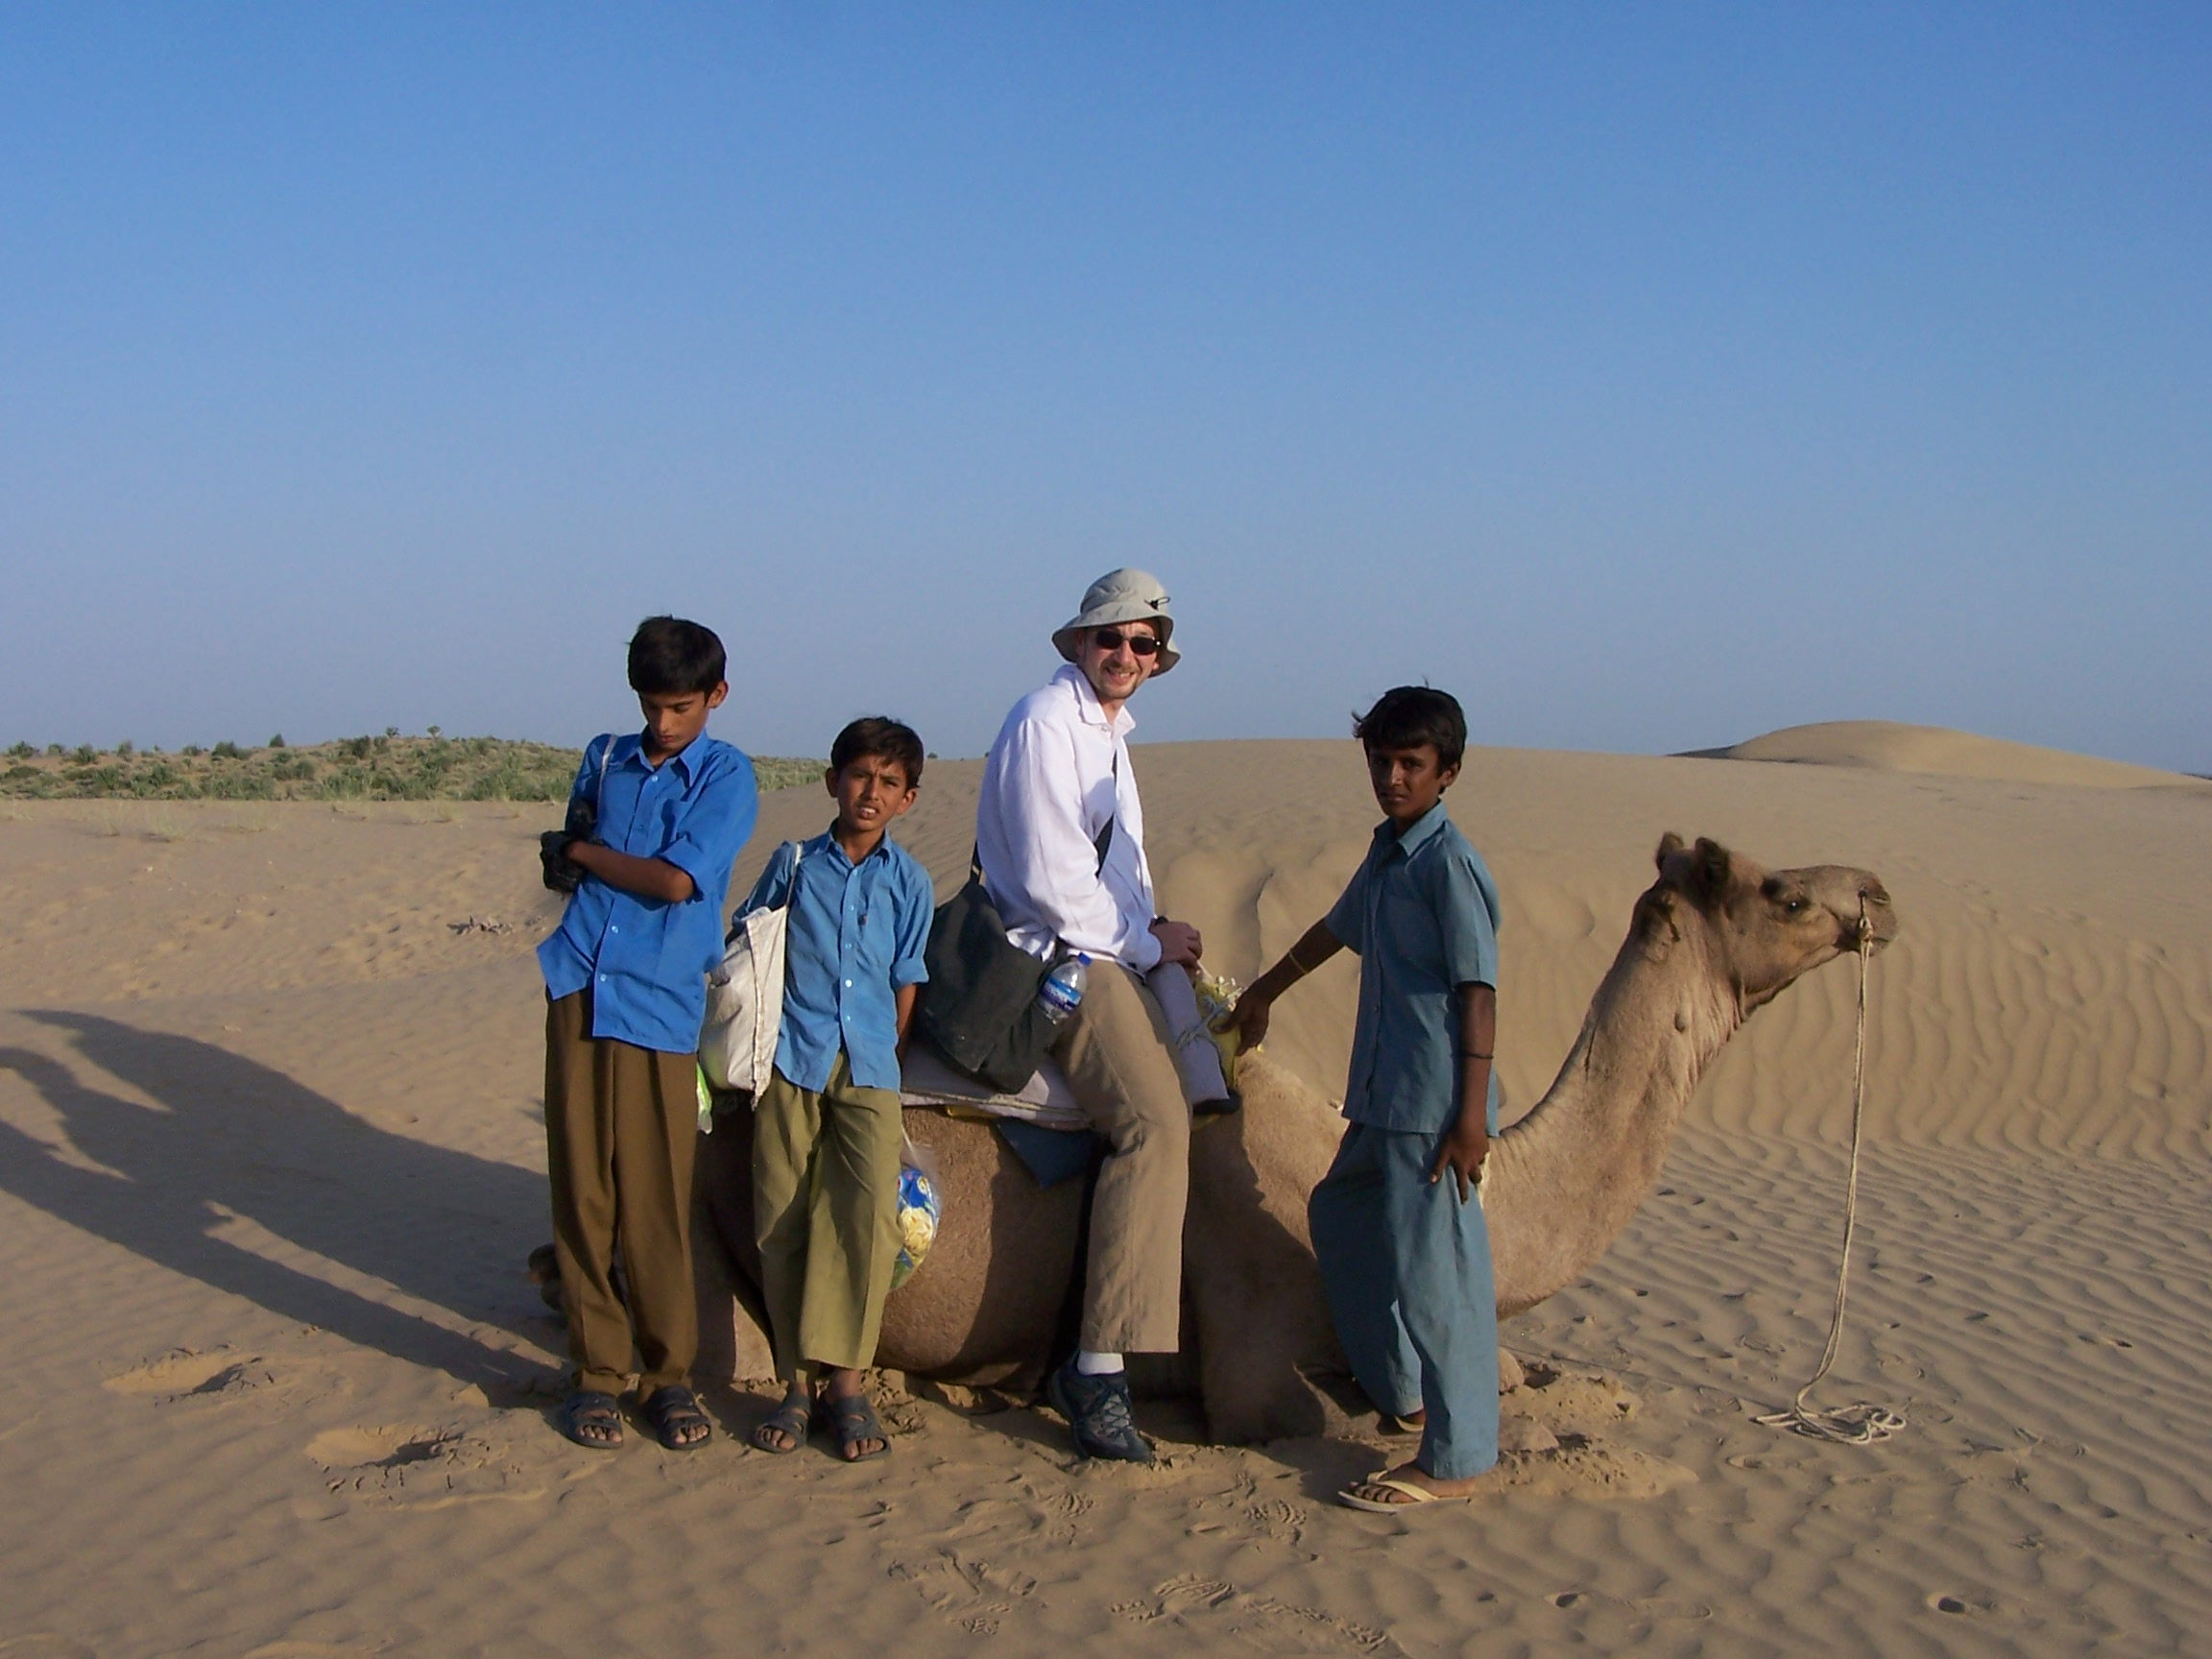 On a camel in India